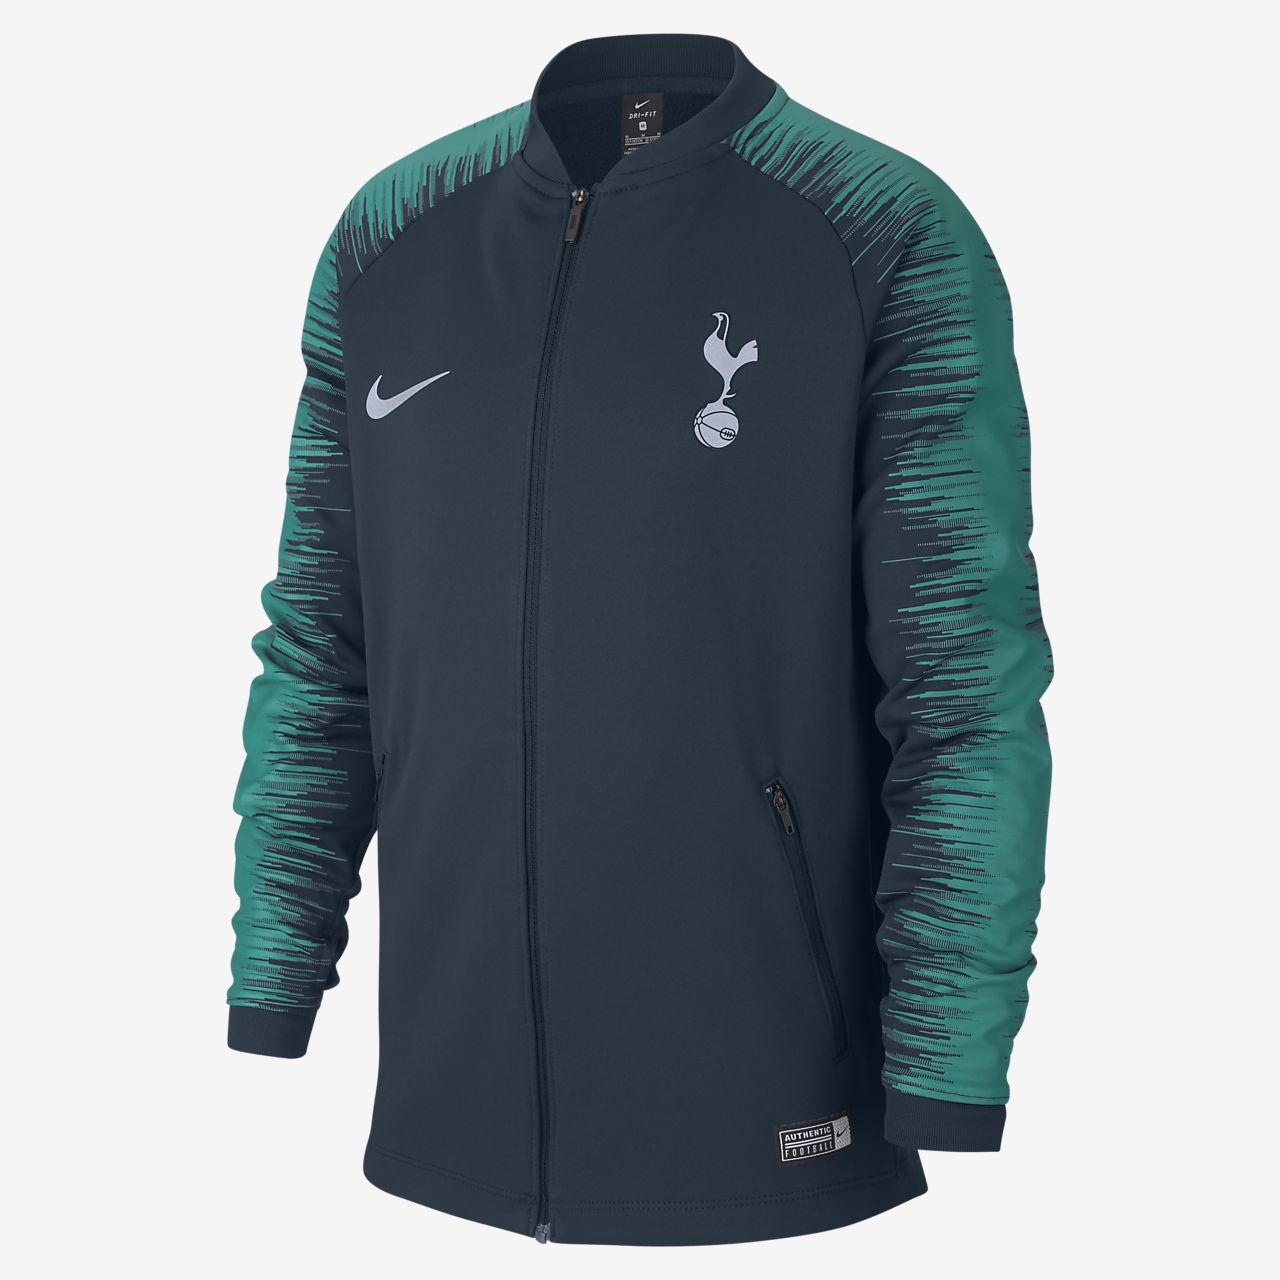 Tottenham Hotspur Anthem Older Kids  Football Jacket. Nike.com GB 91ef313e9